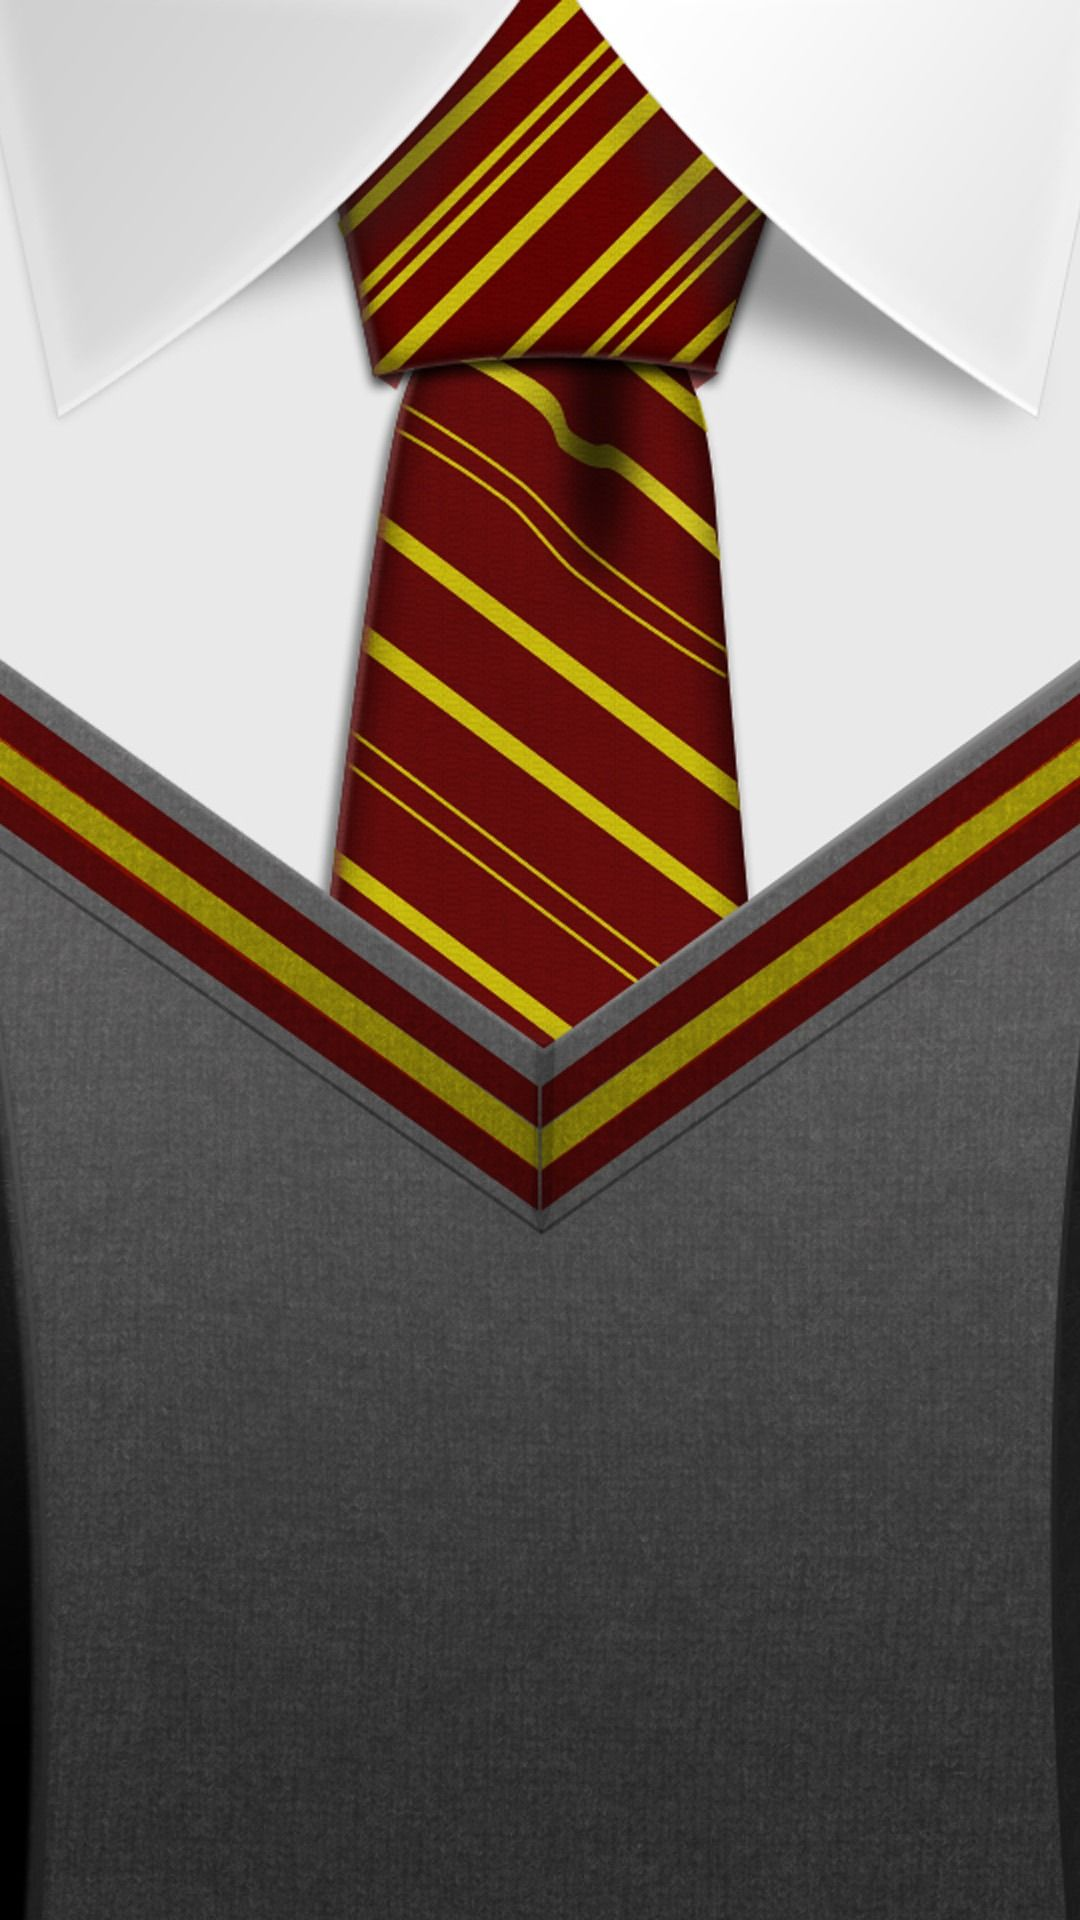 719x1280 Pin By Tessa Castle On Wallpapers Pinterest Harry Potter Books